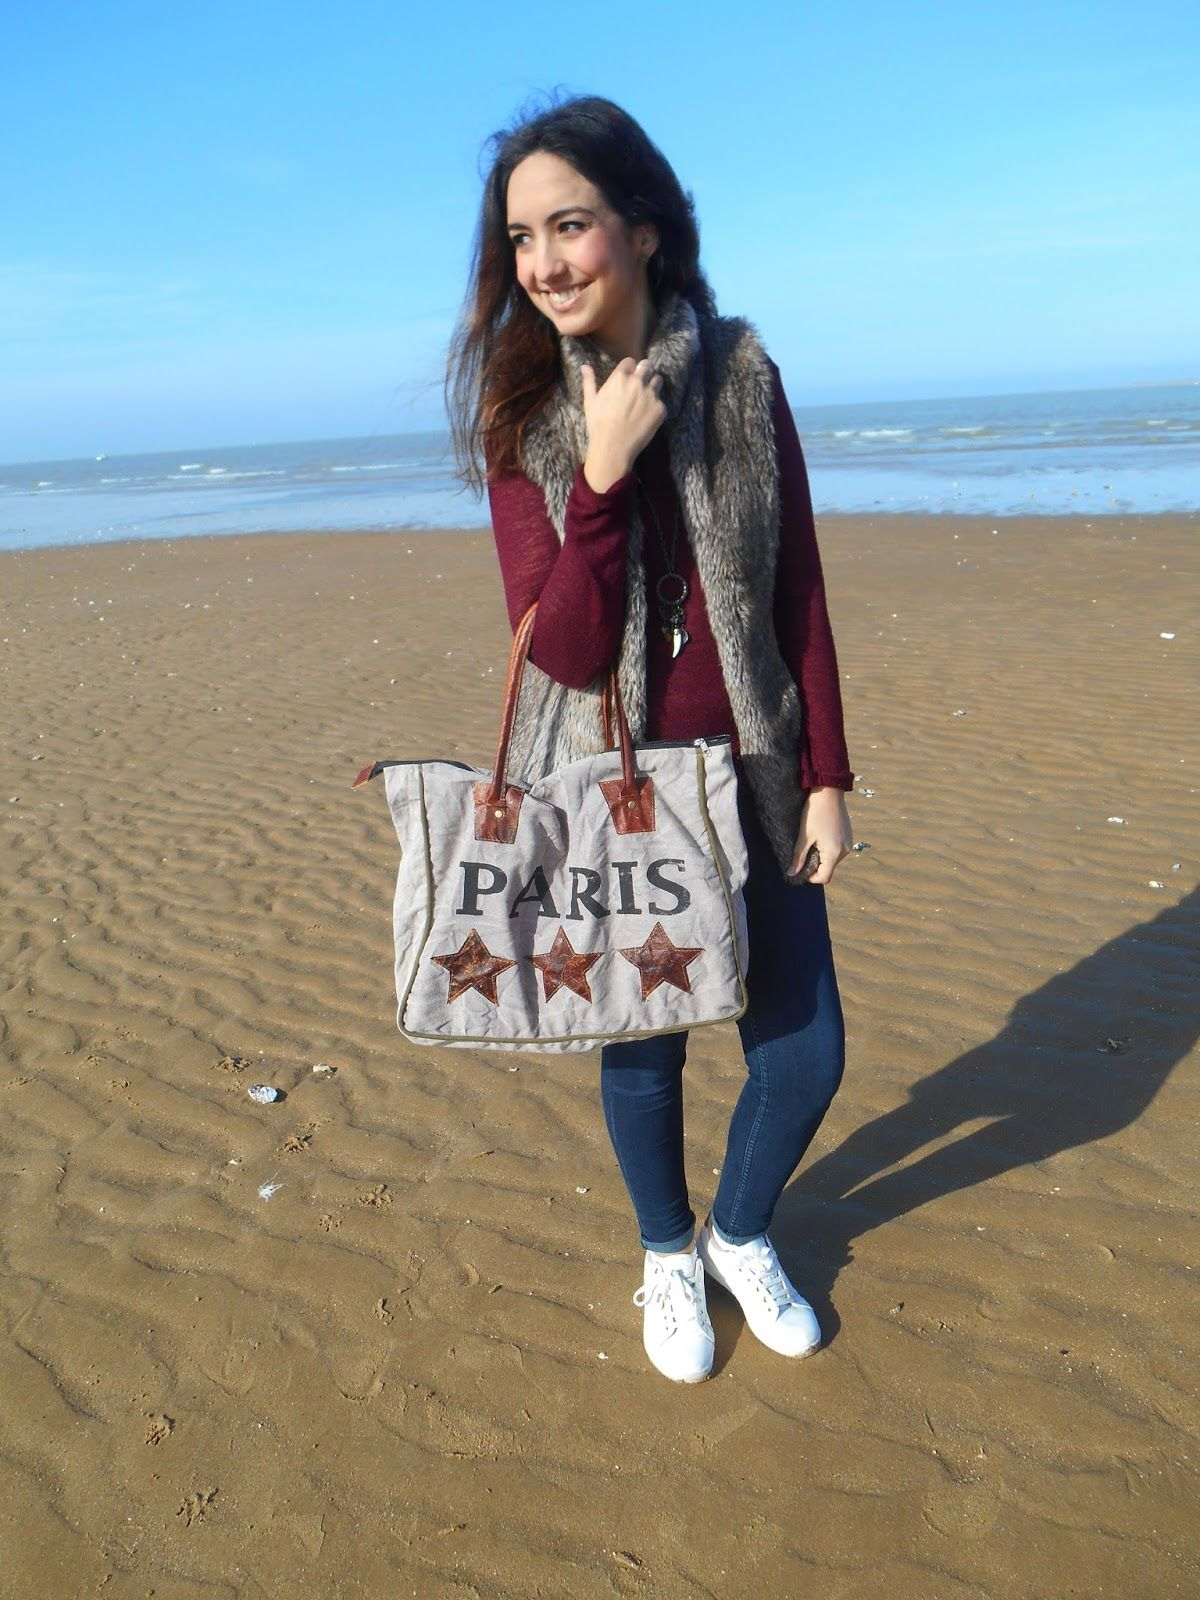 PLAYA EN INVIERNO | All about Style | Pinterest | Playa Invierno y Blog